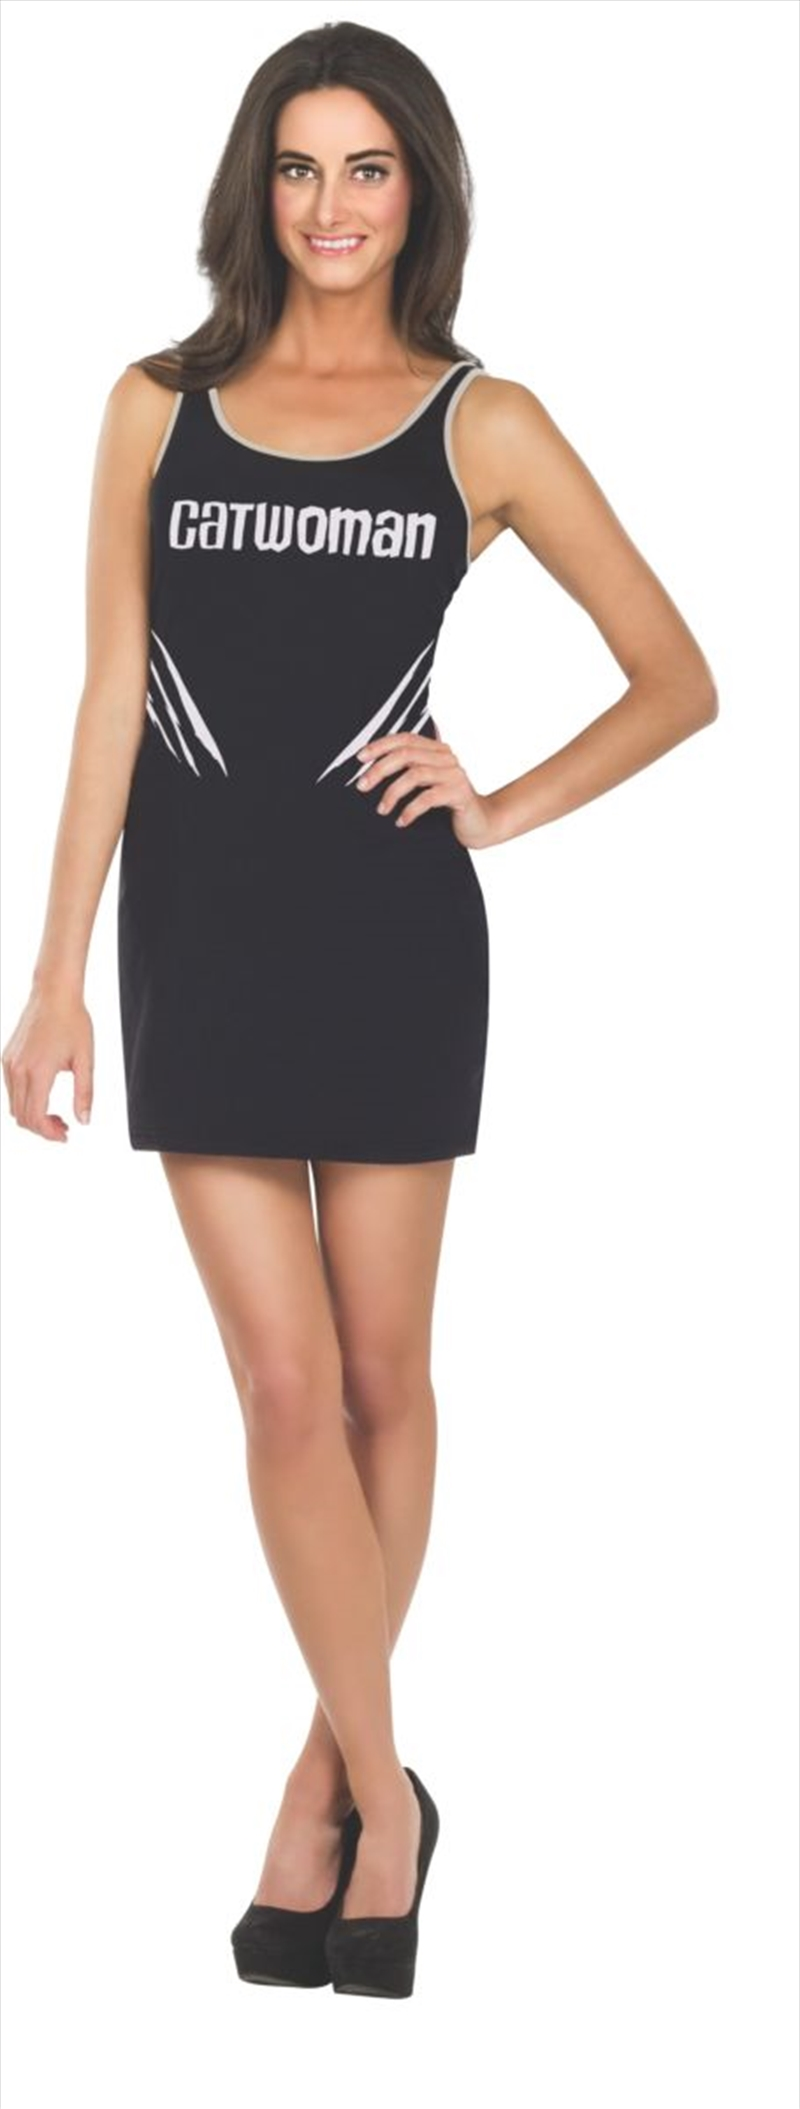 Catwoman Tank Dress: Size Small | Apparel